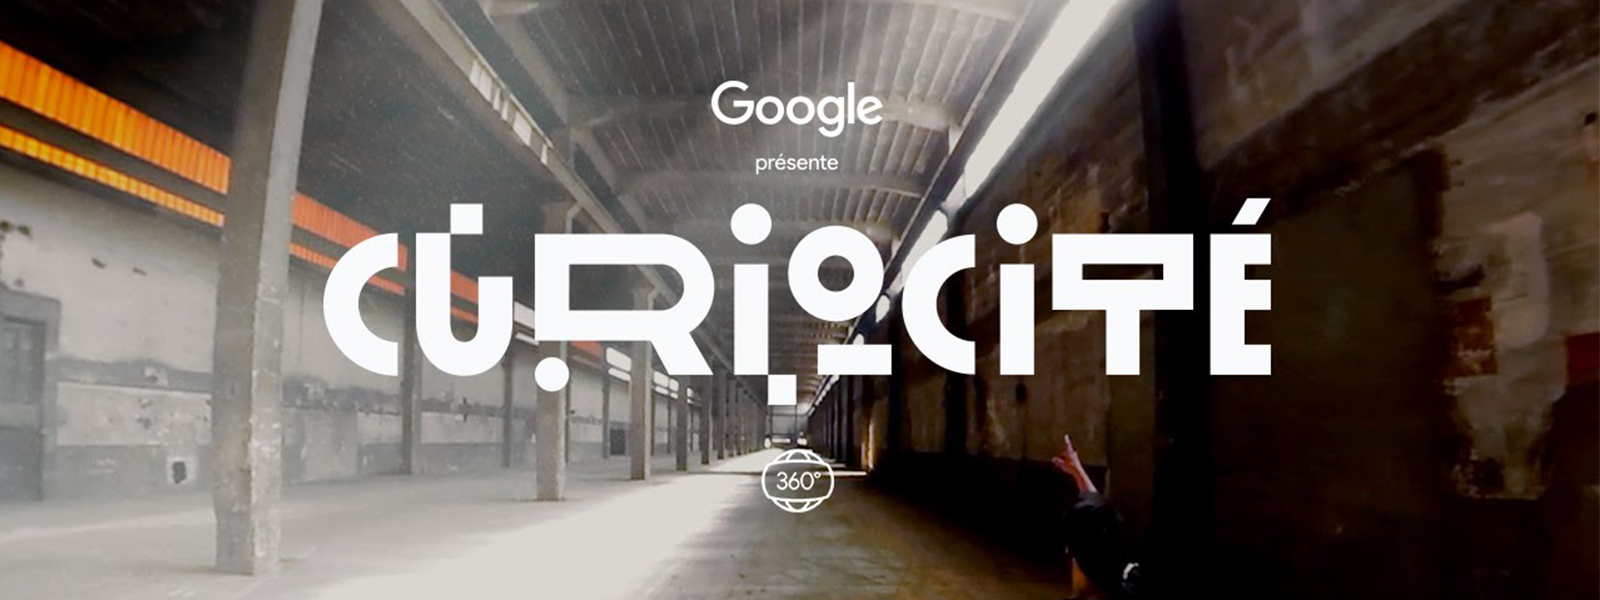 google-curiocite-vr-digitalimmersion